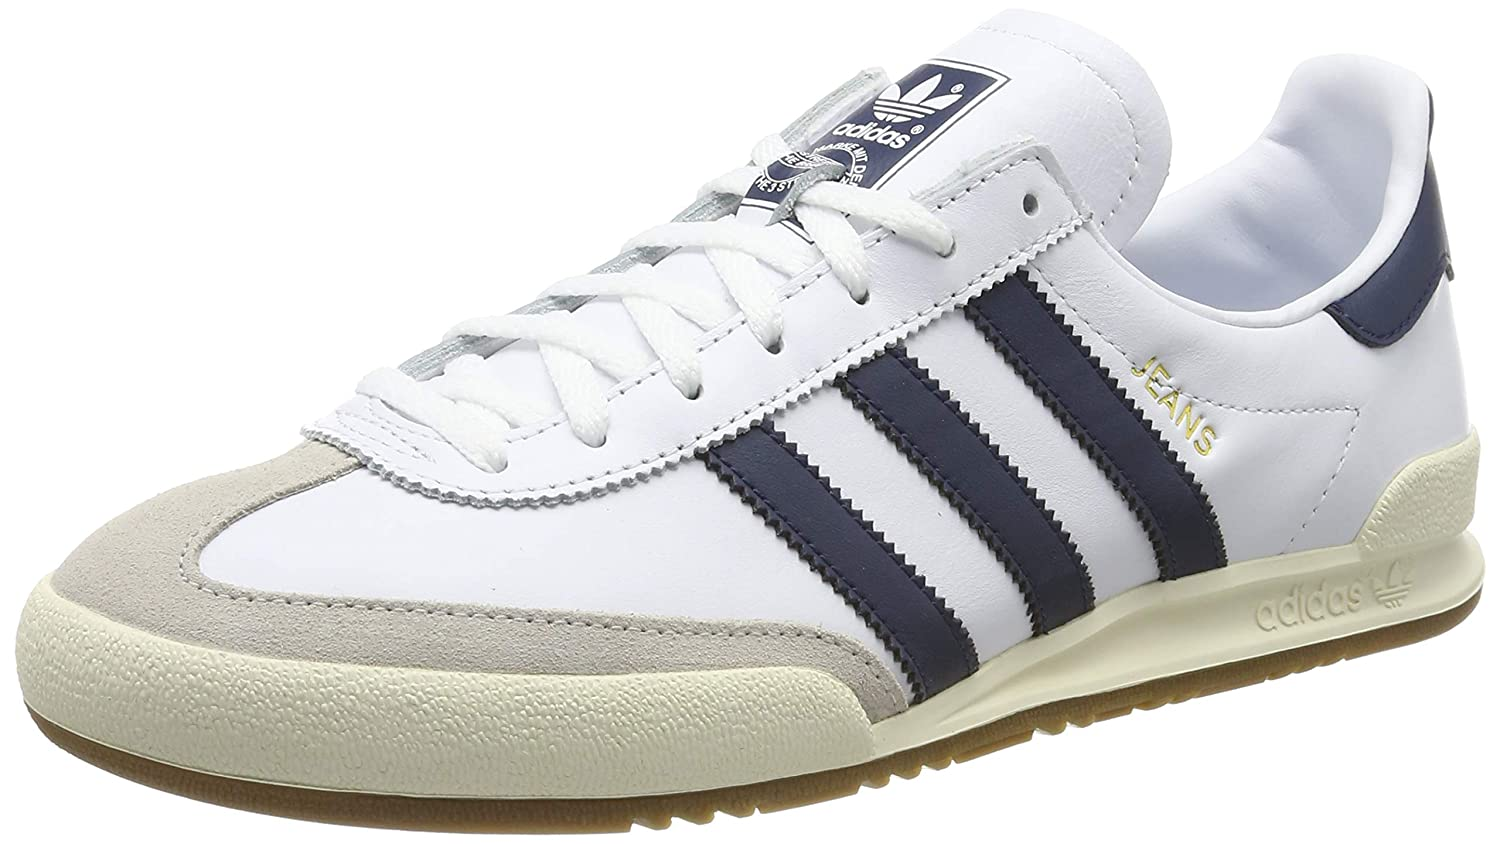 adidas Originals Jeans Sneakers In White S79998